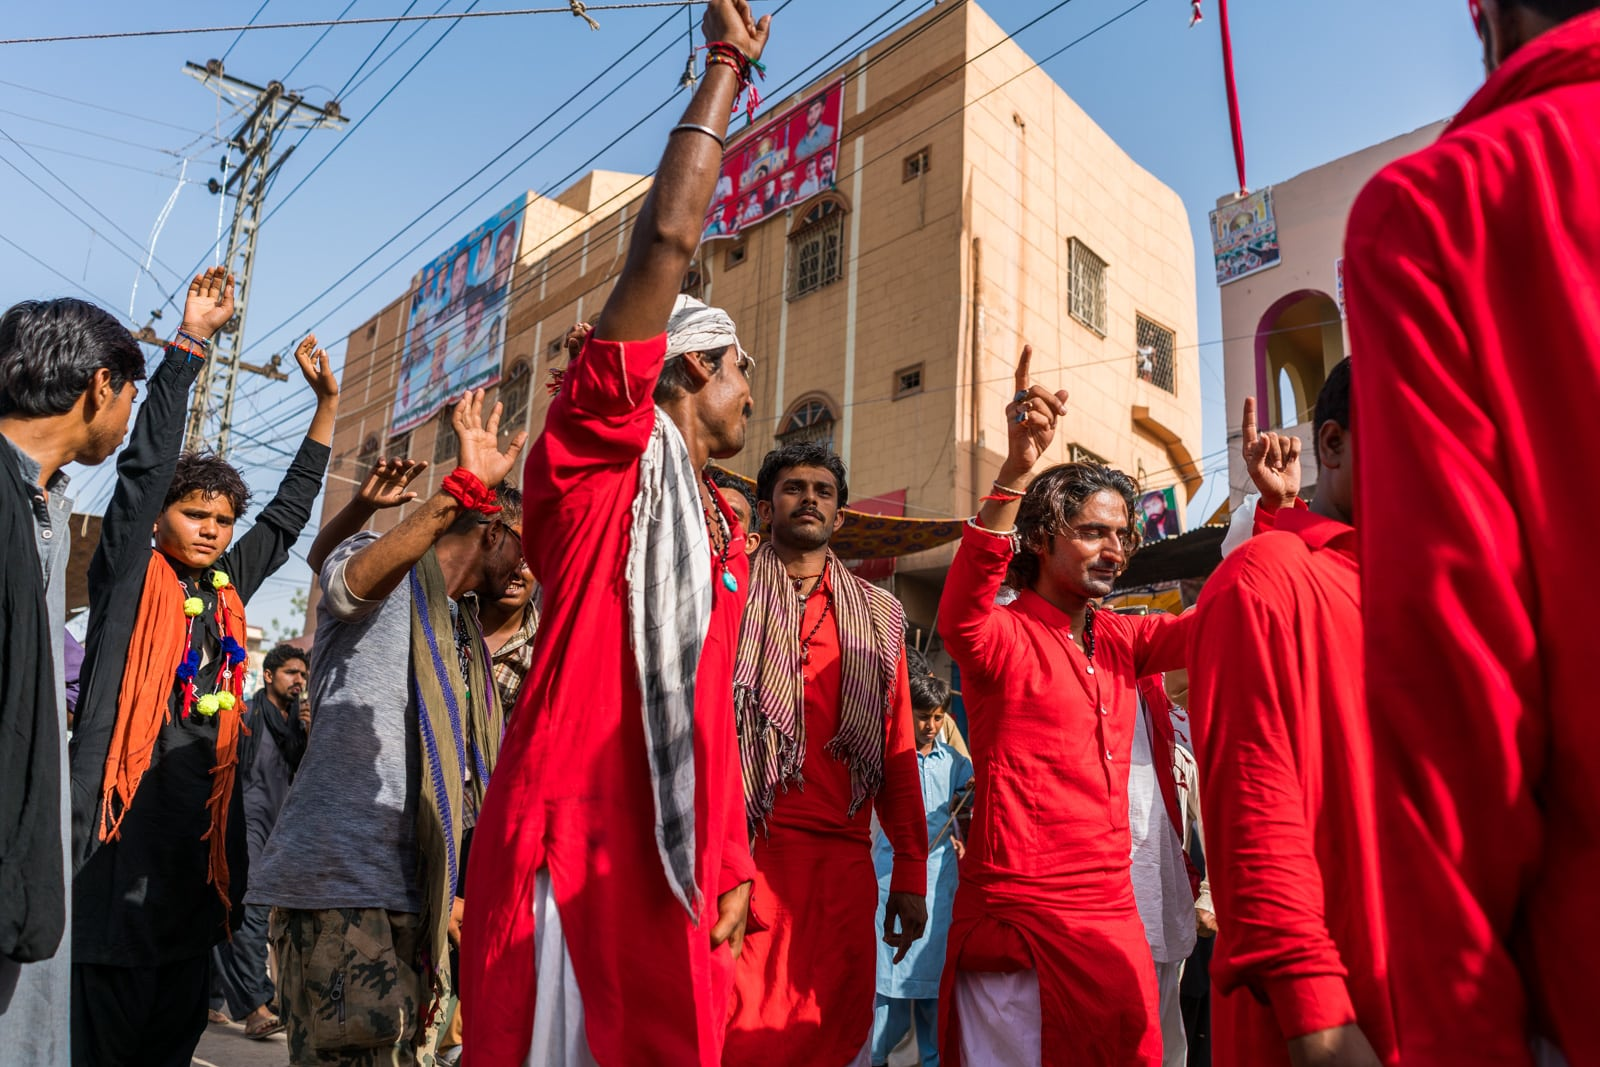 The Urs of Lal Shahbaz Qalandar in Sehwan, Pakistan - Sufi men in red dancing on the streets - Lost With Purpose travel blog